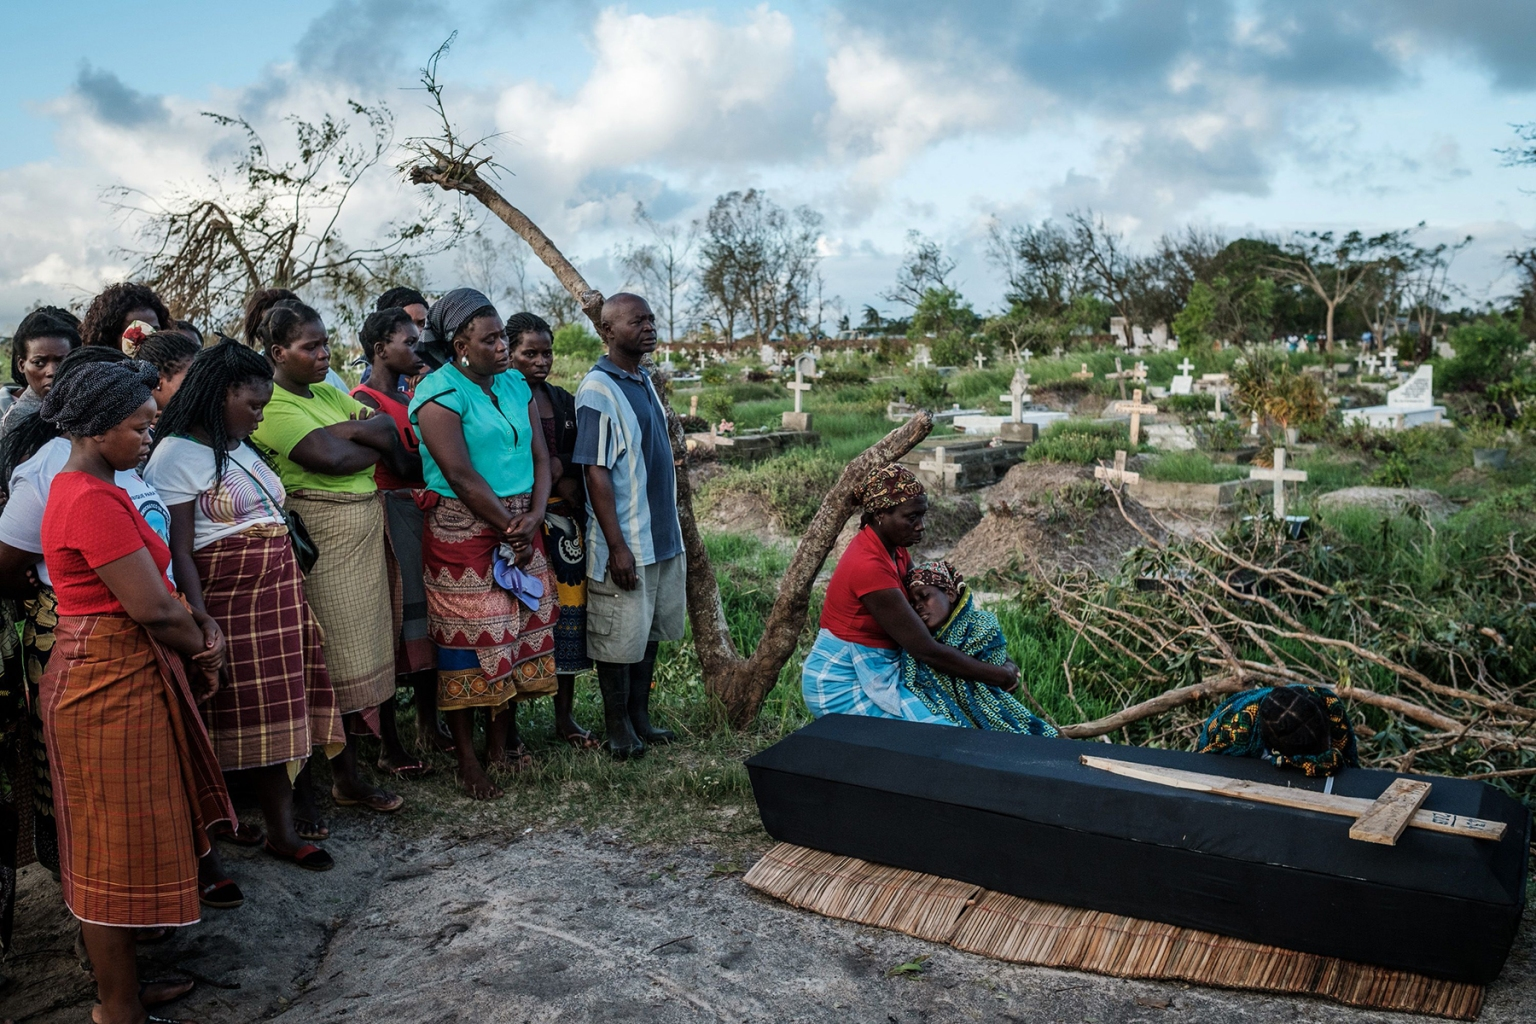 Rebecca Albino mourns beside the coffin of her husband during his funeral on March 20 following a deadly cyclone that hit Beira, Mozambique, and killed hundreds there and in neighboring Zimbabwe. YASUYOSHI CHIBA/AFP/Getty Images